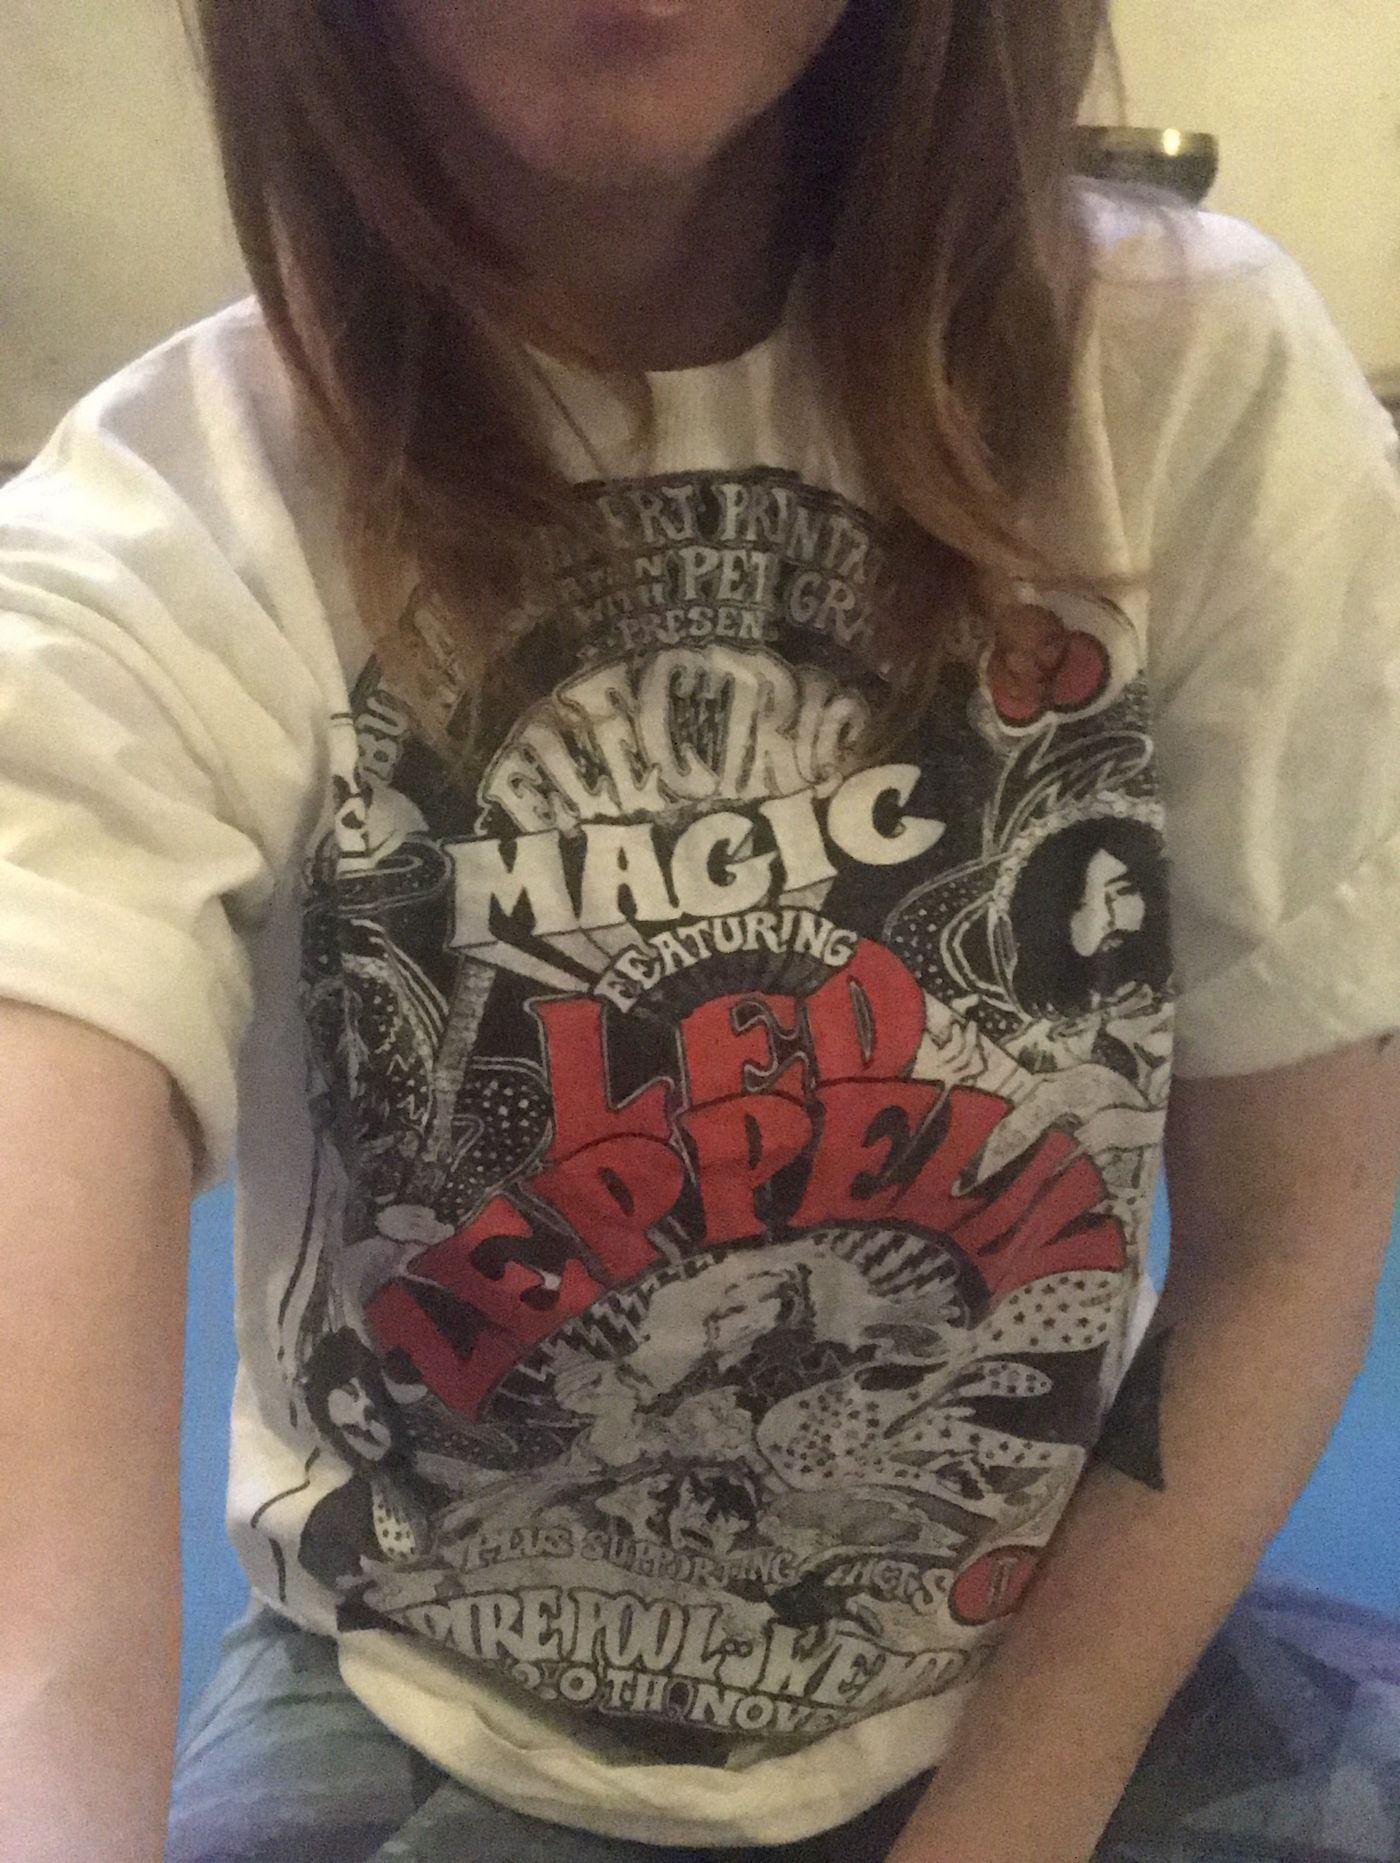 Bringing a bit of rock to my Yoga practice today in my Vintage Led Zeppelin Rock Tee, I'm not called the Vintage Vinyasa for nothing....